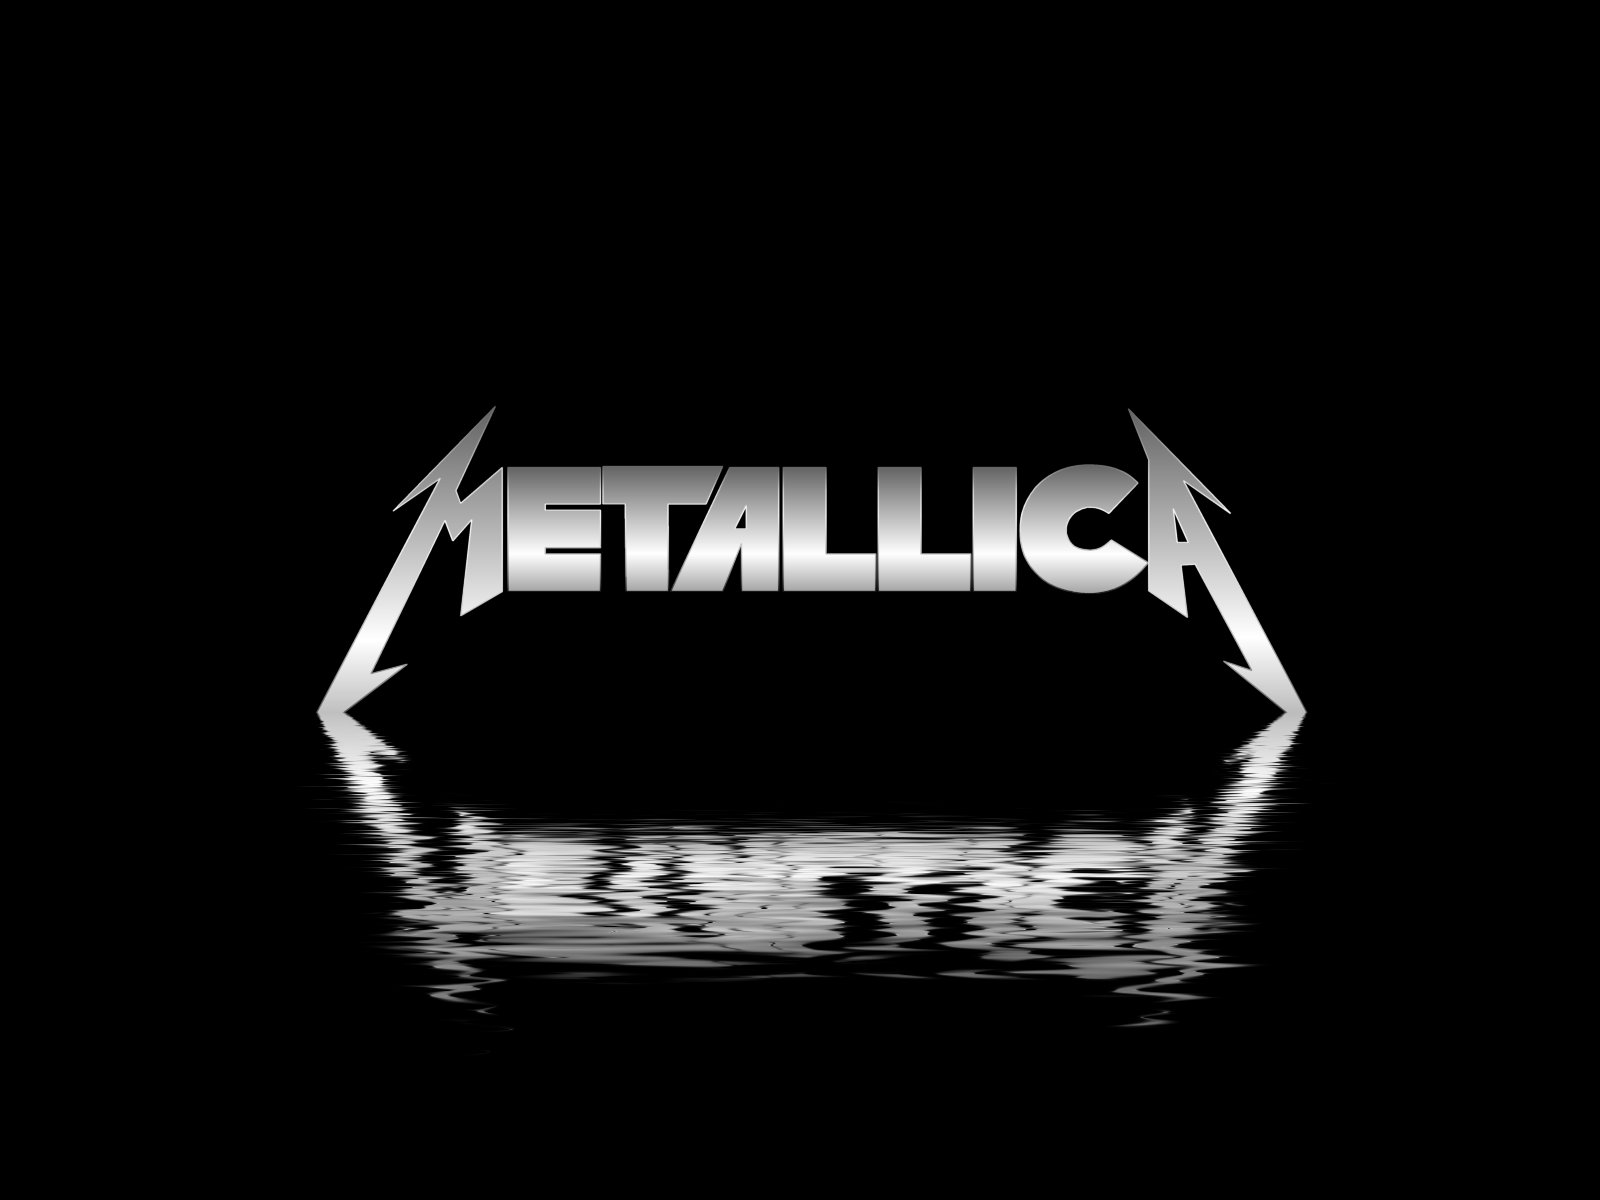 Metallica - Picture Colection